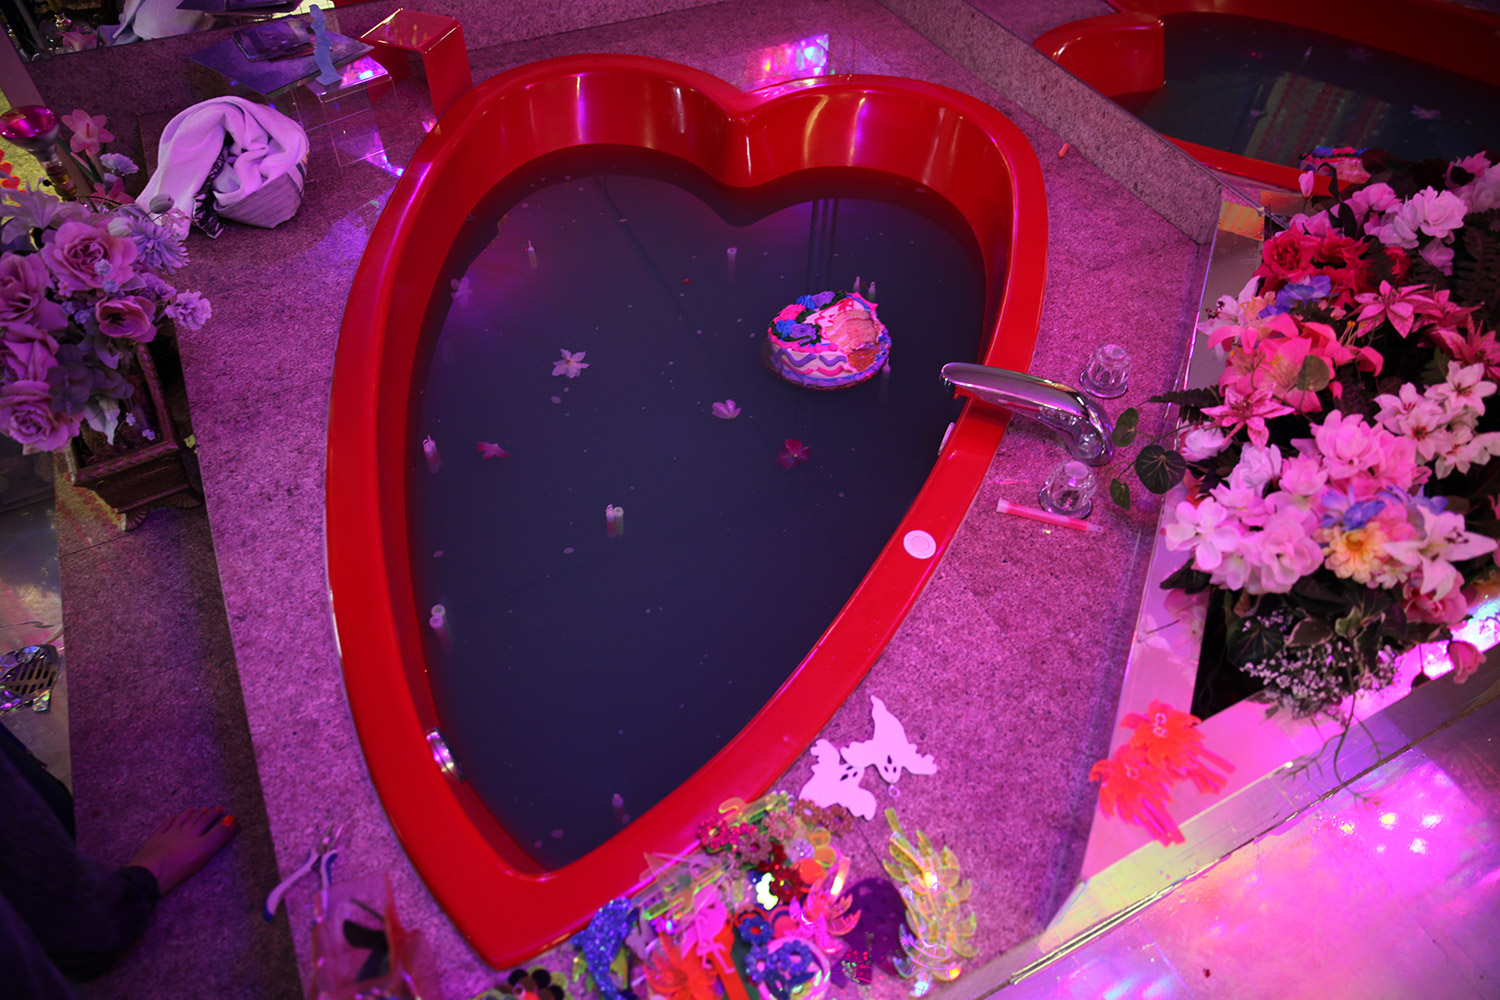 Marina Fini and Signe Pierce, Motelscape - motel heart-shaped bathtub